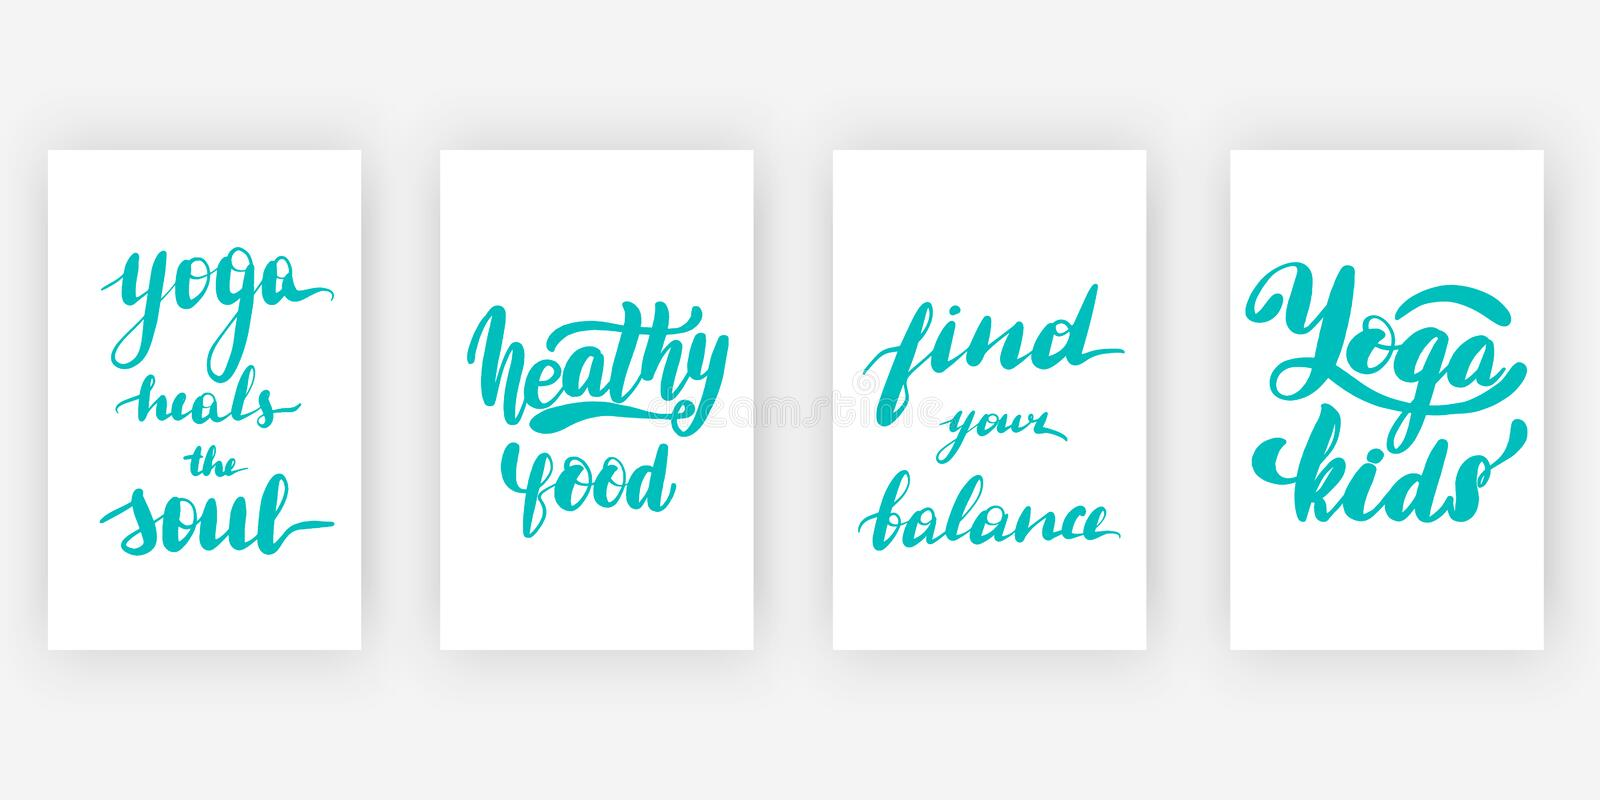 Yoga heals the soul. Healthy. Food. Find your balance. Yoga kids. Four posters set with motivational quotes, calligraphy vector illustration collection royalty free illustration